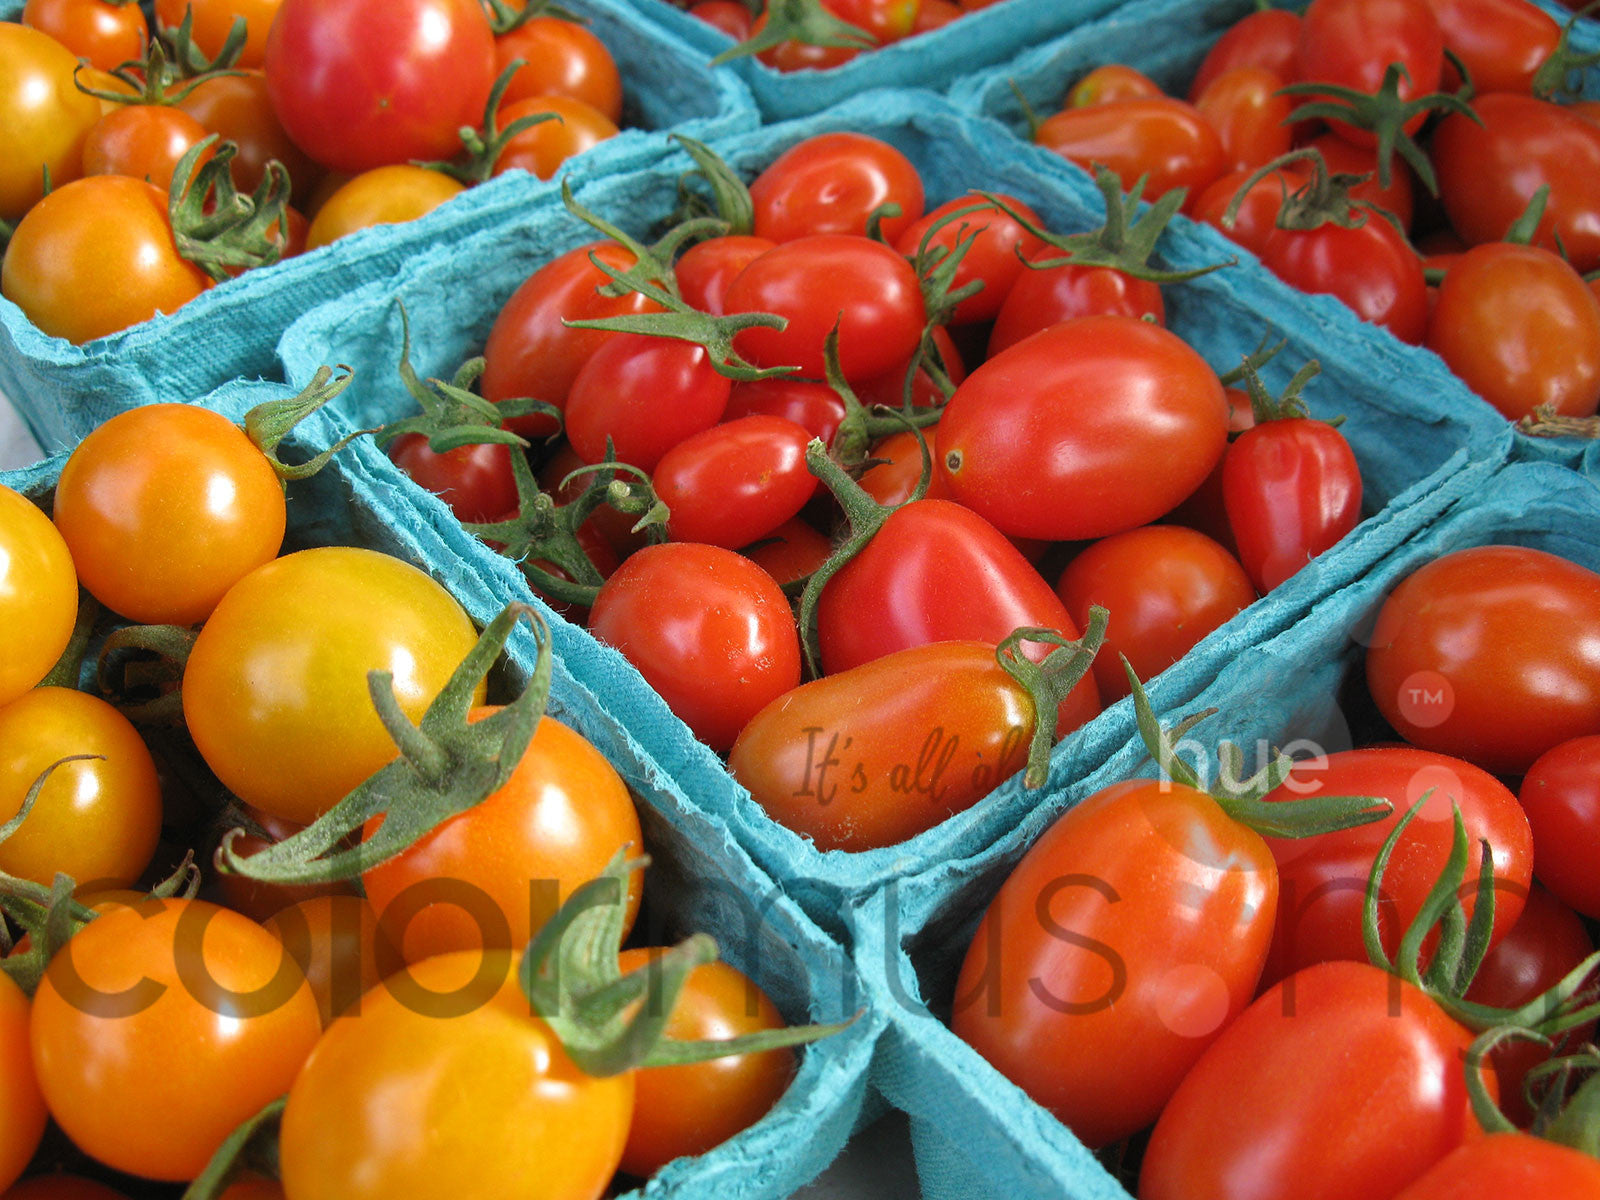 Market Tomatoes II Color Palette: Downloadable Editable PSD/JPEG Files